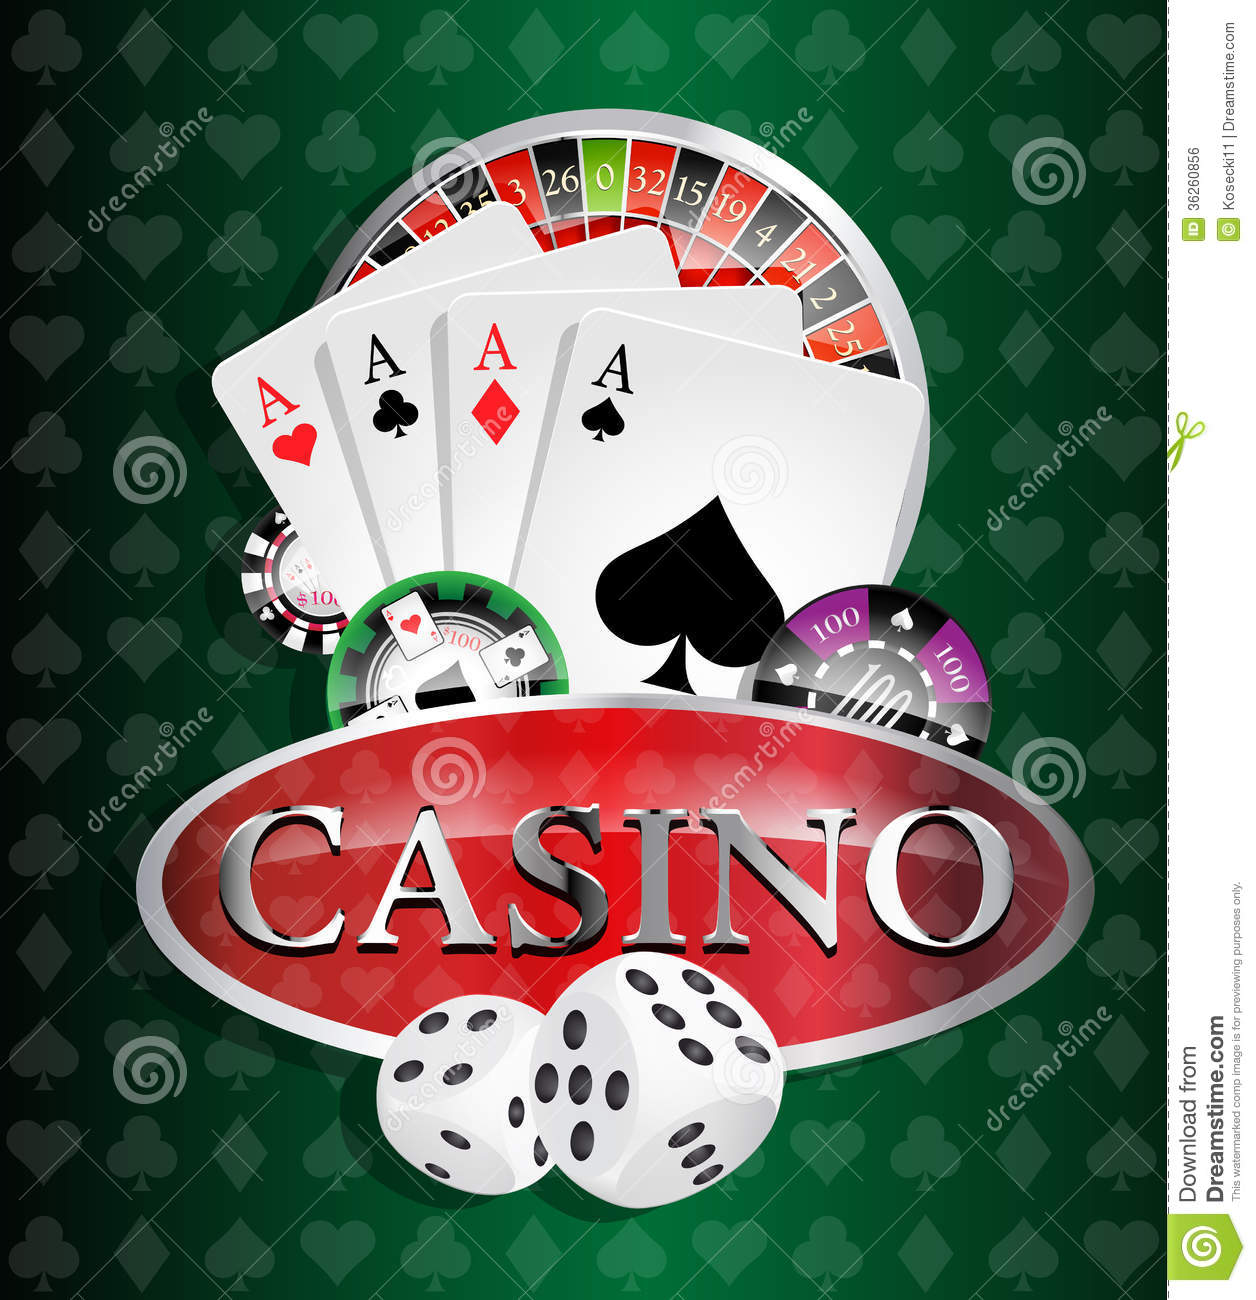 casino-all-casino-games-winner-concept-3